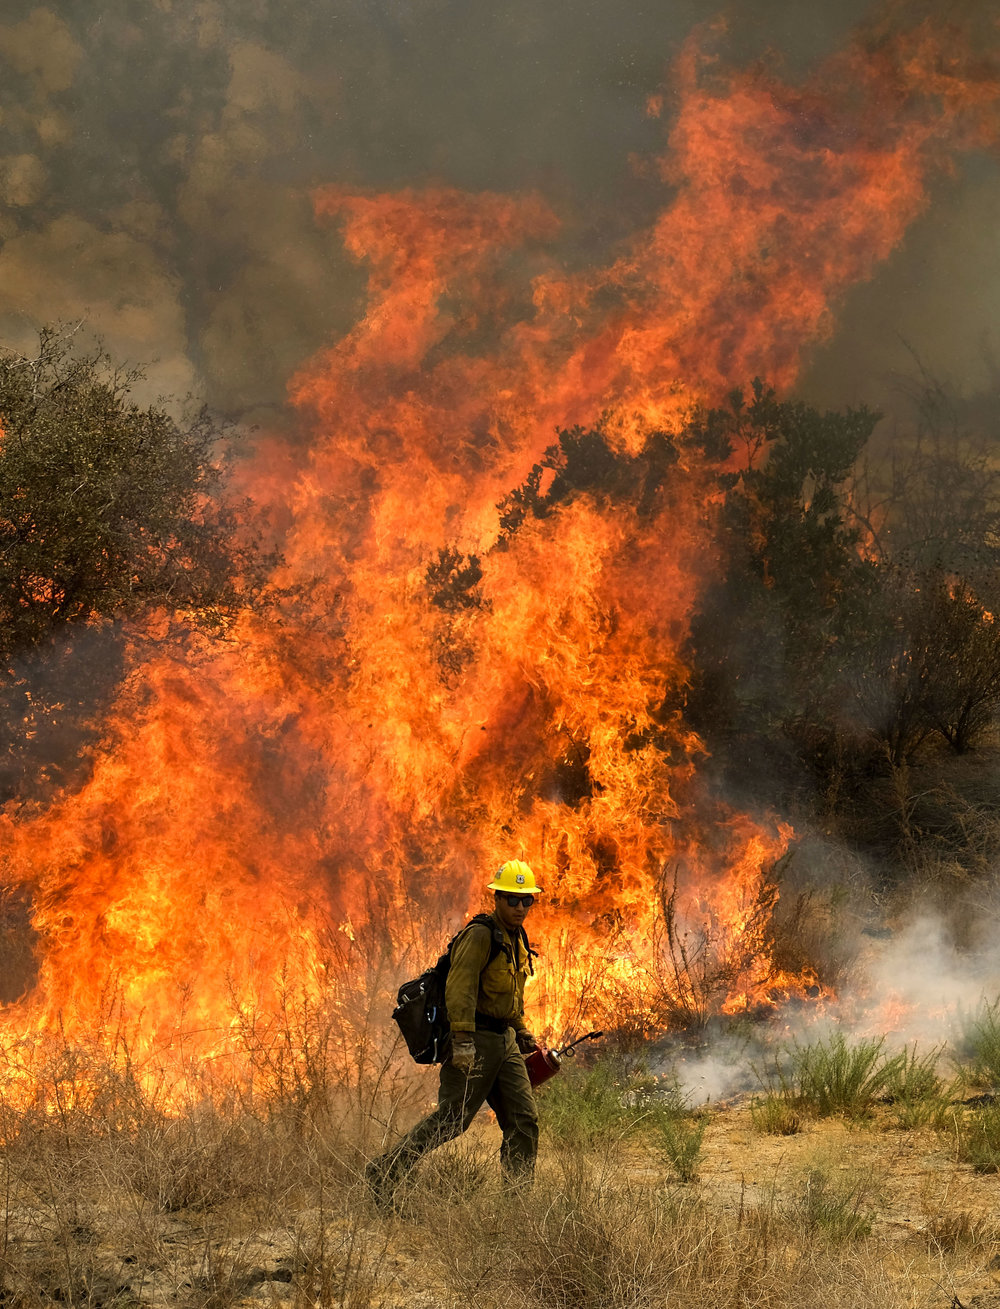 A firefighter battles the Holy Fire burning in the Cleveland National Forest in Lake Elsinore, California on Friday, Aug. 10, 2018.